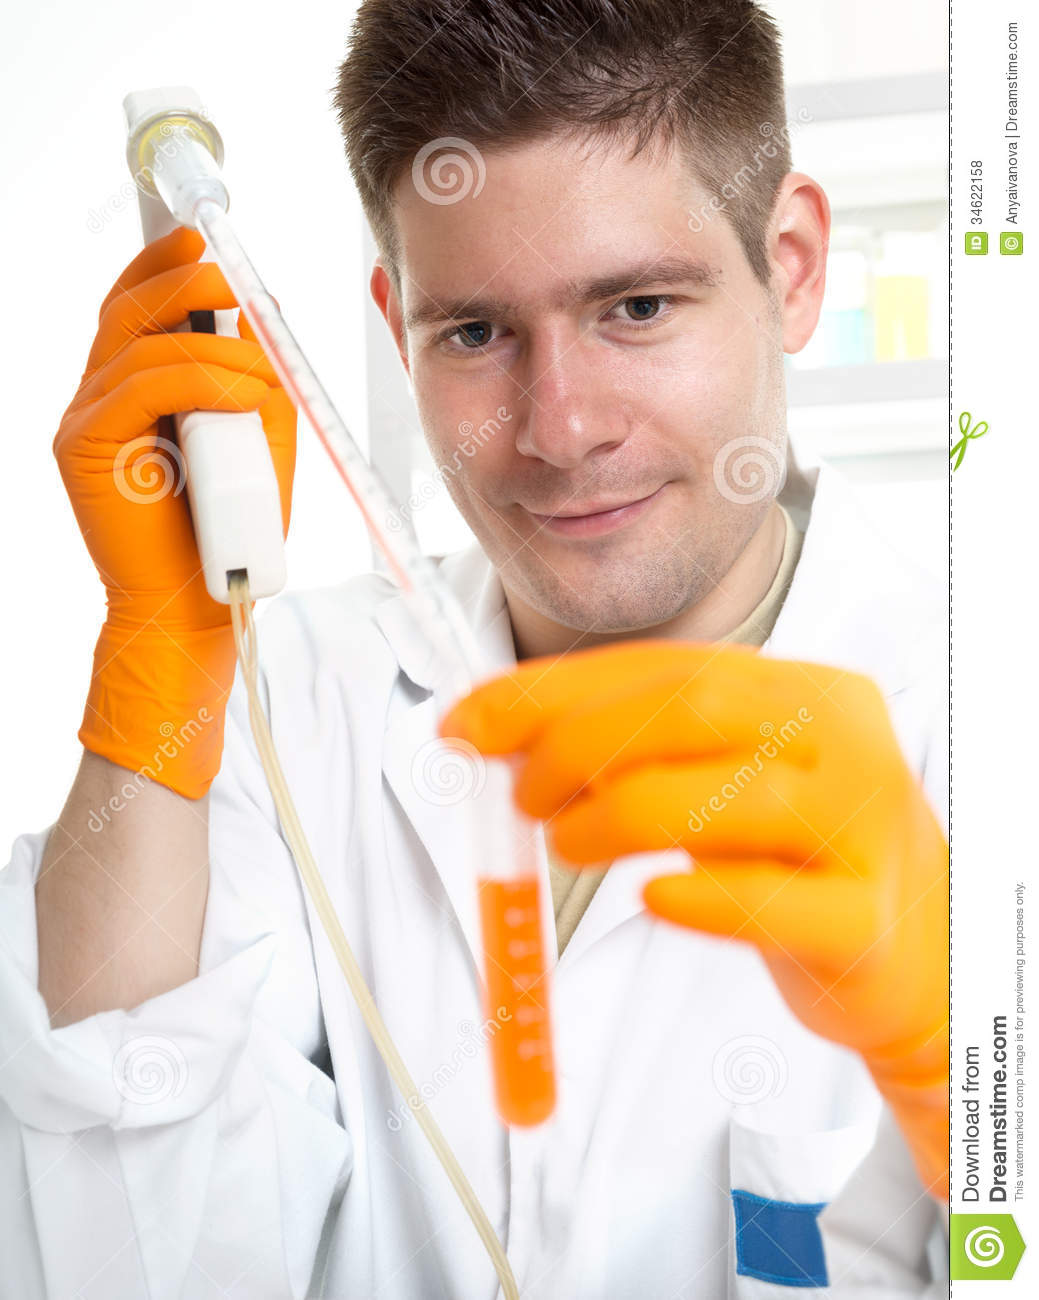 young male scientist at work stock photo image of interior portrait 34622158